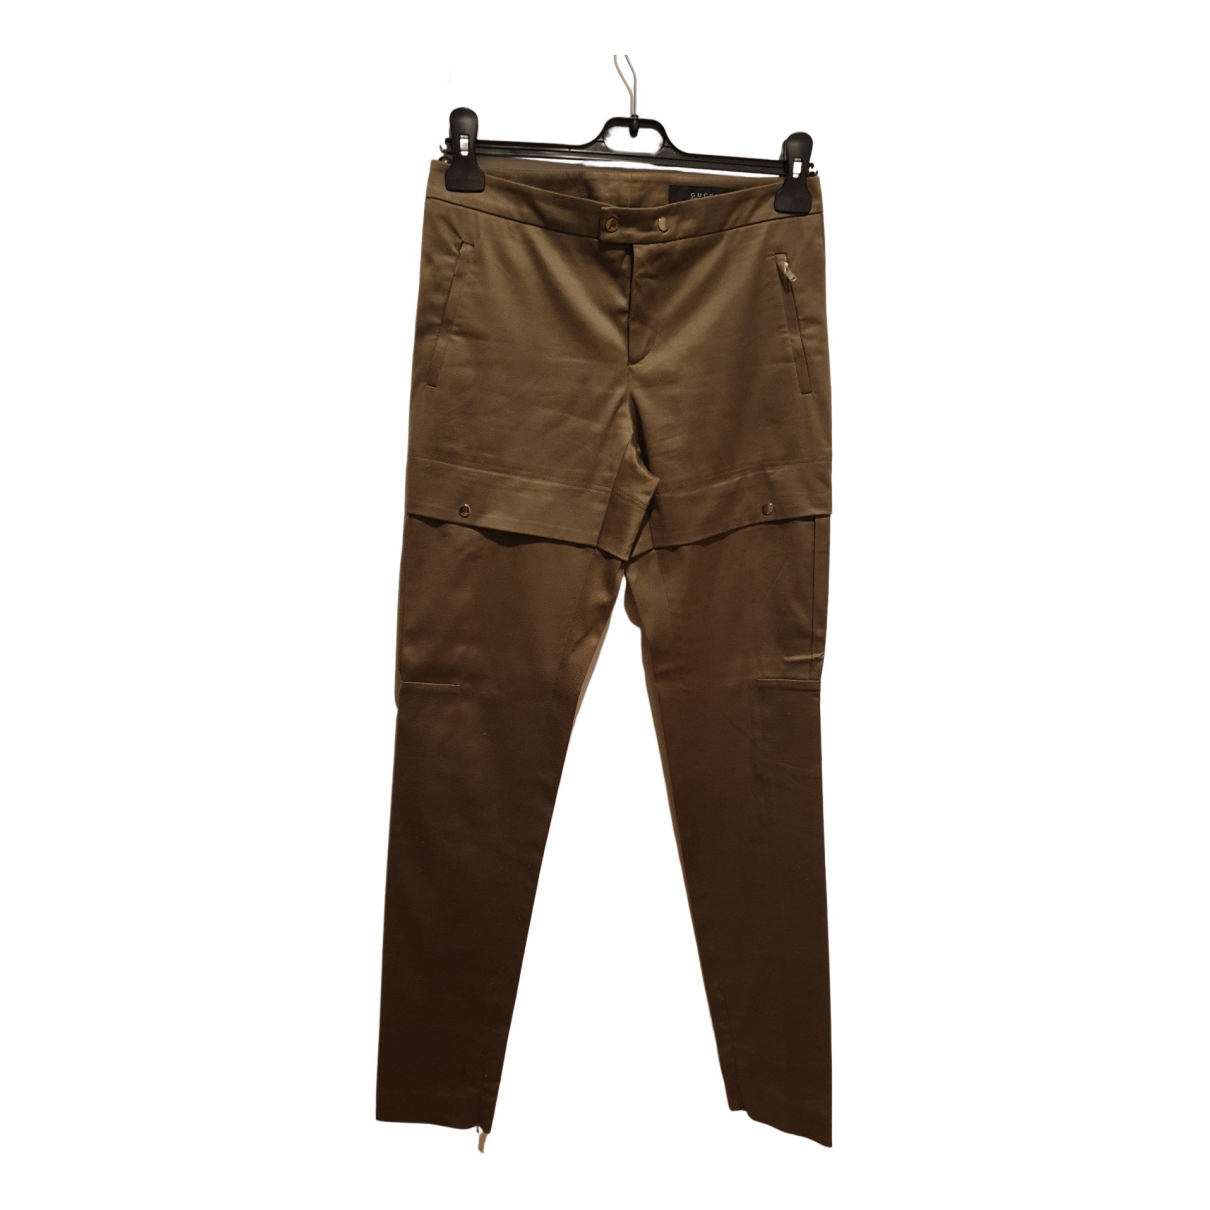 Gucci N Green Cotton Trousers for Women 38 FR